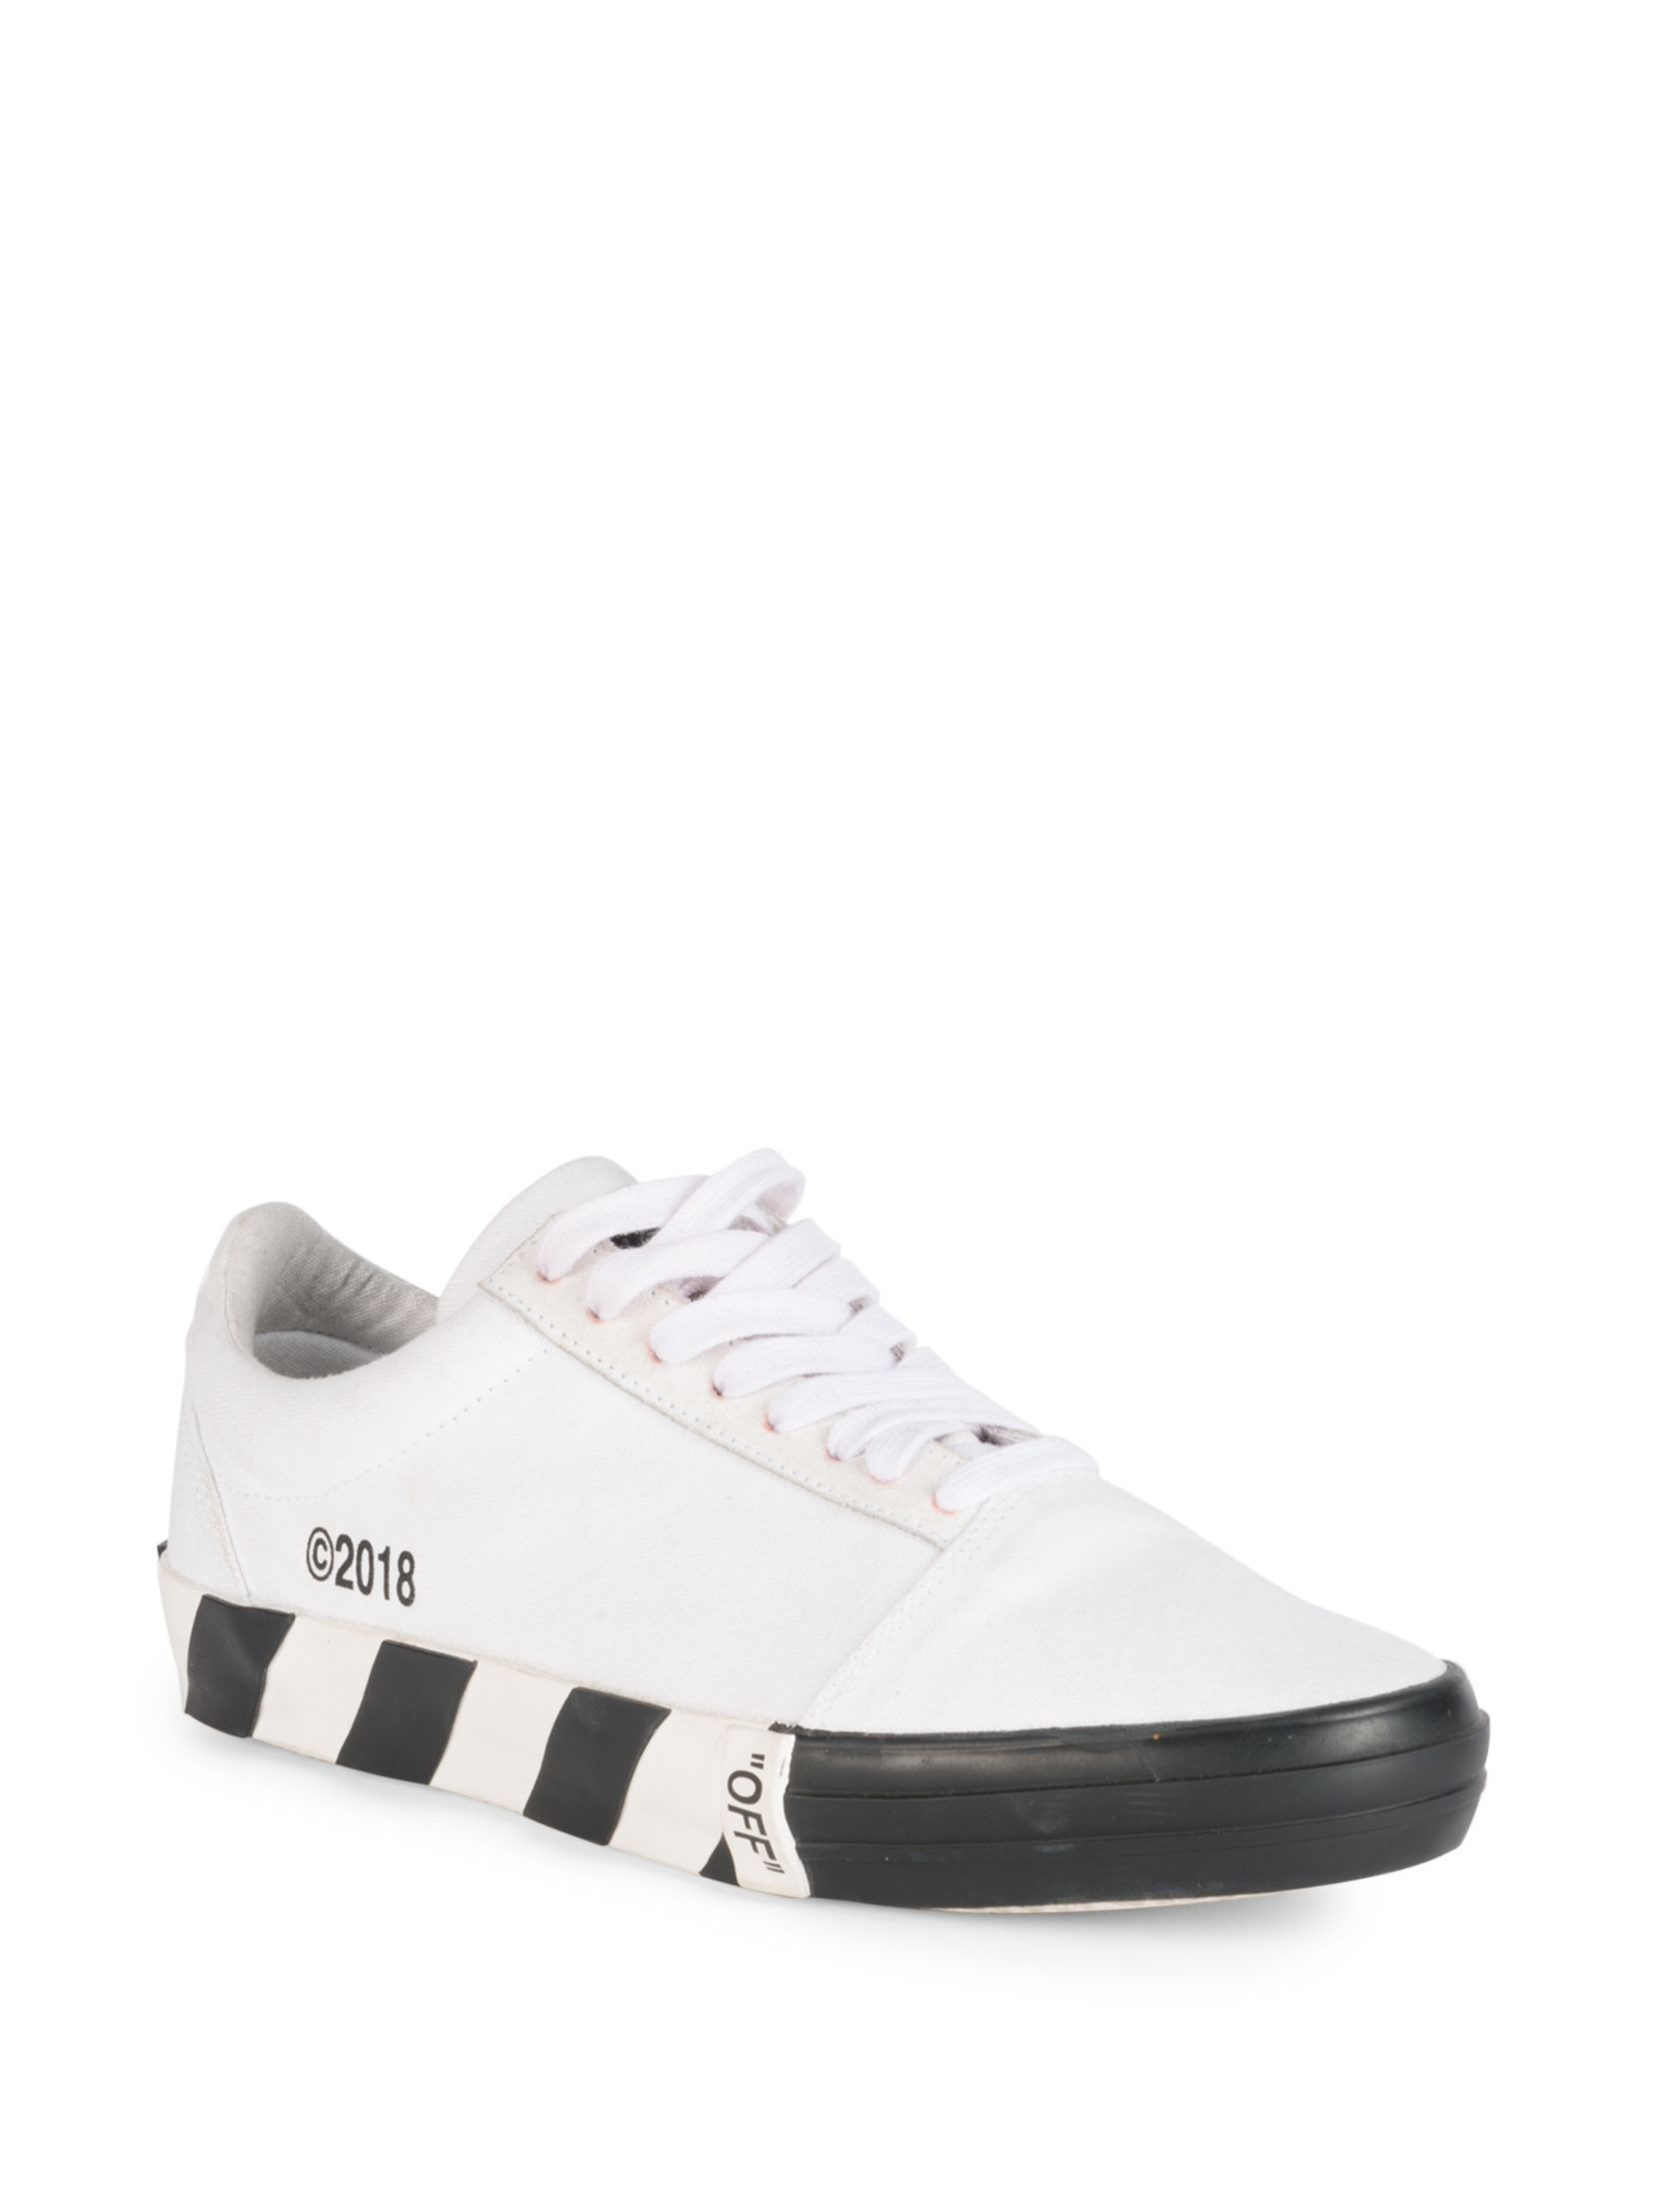 ccdf91ae5355 Off-White Vulc White Low Top Sneaker